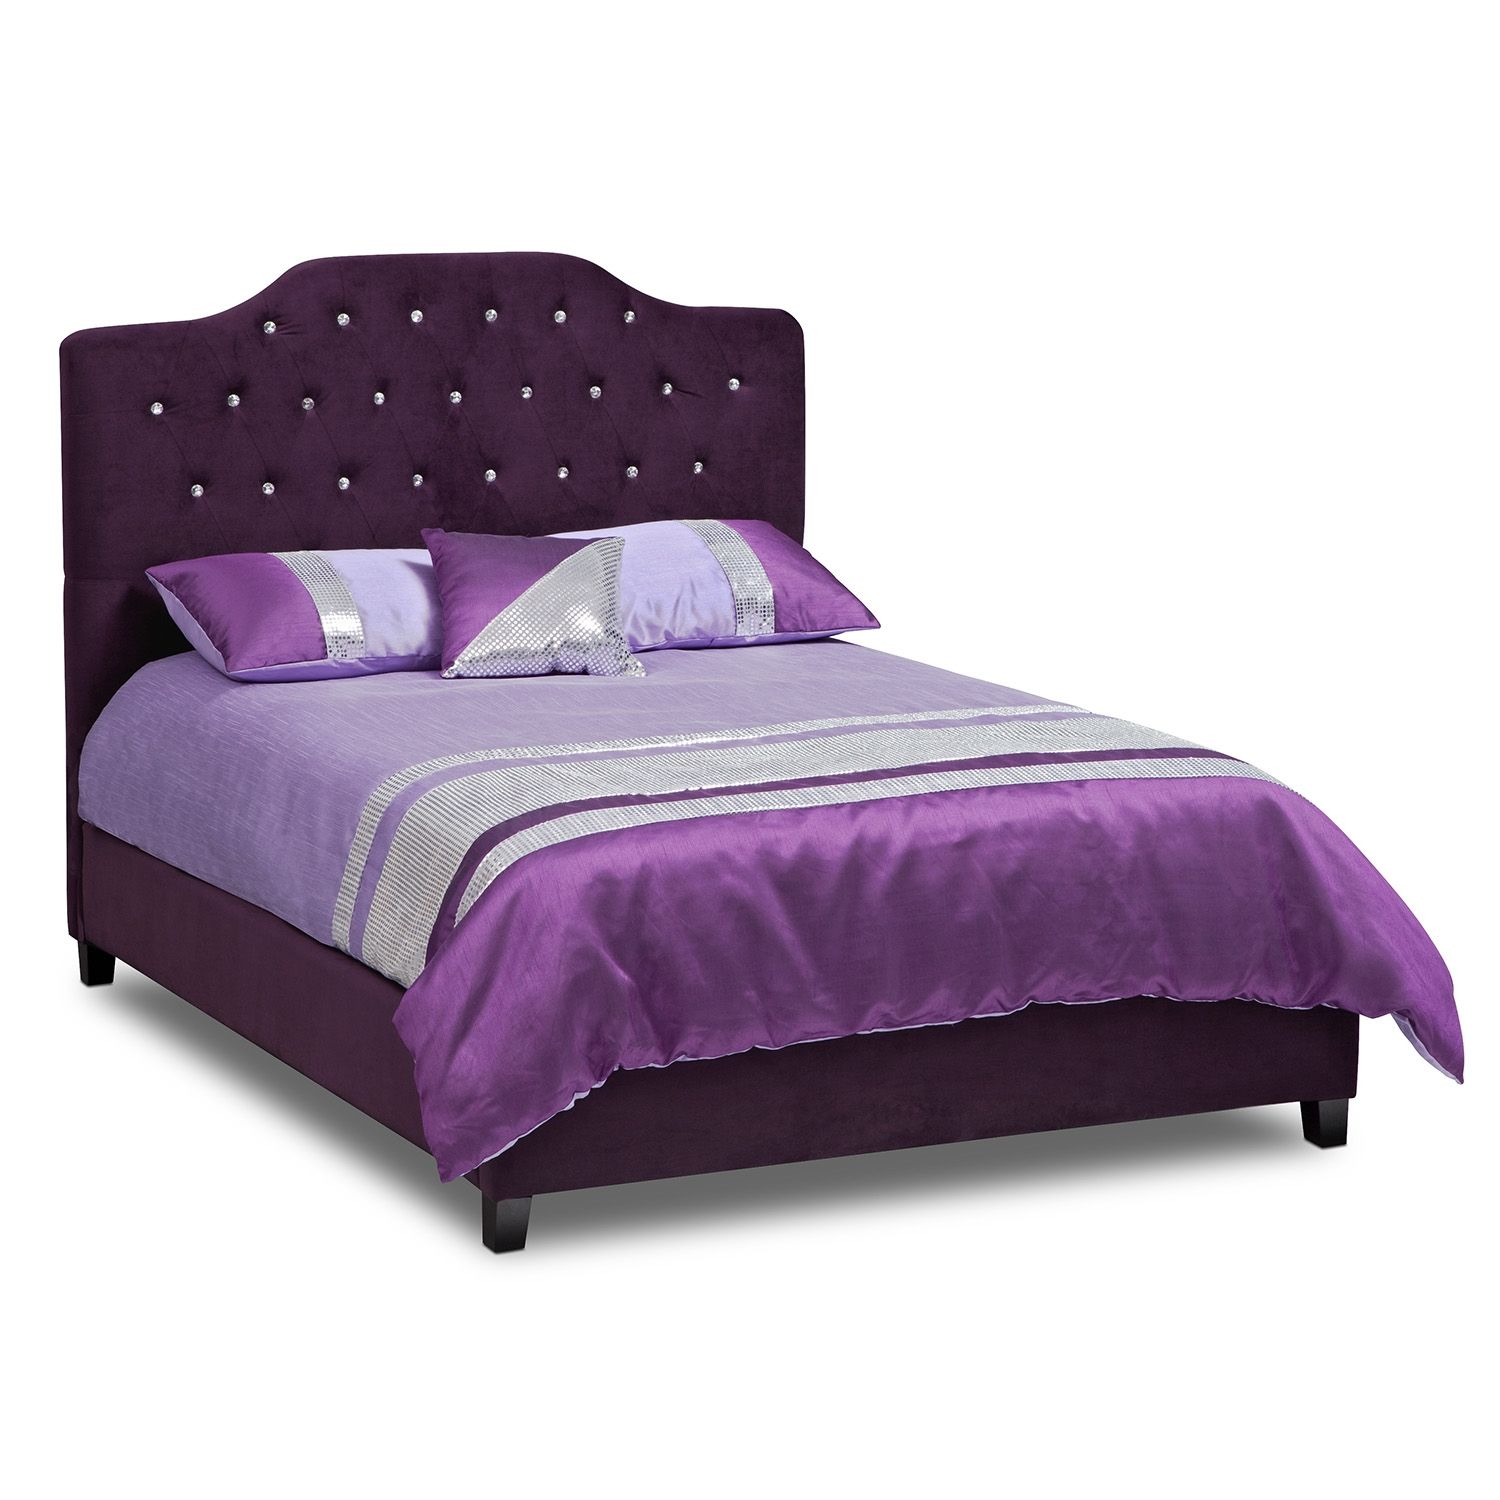 bedroom furniture - valerie ii queen bed | glam time | bedroom, bed